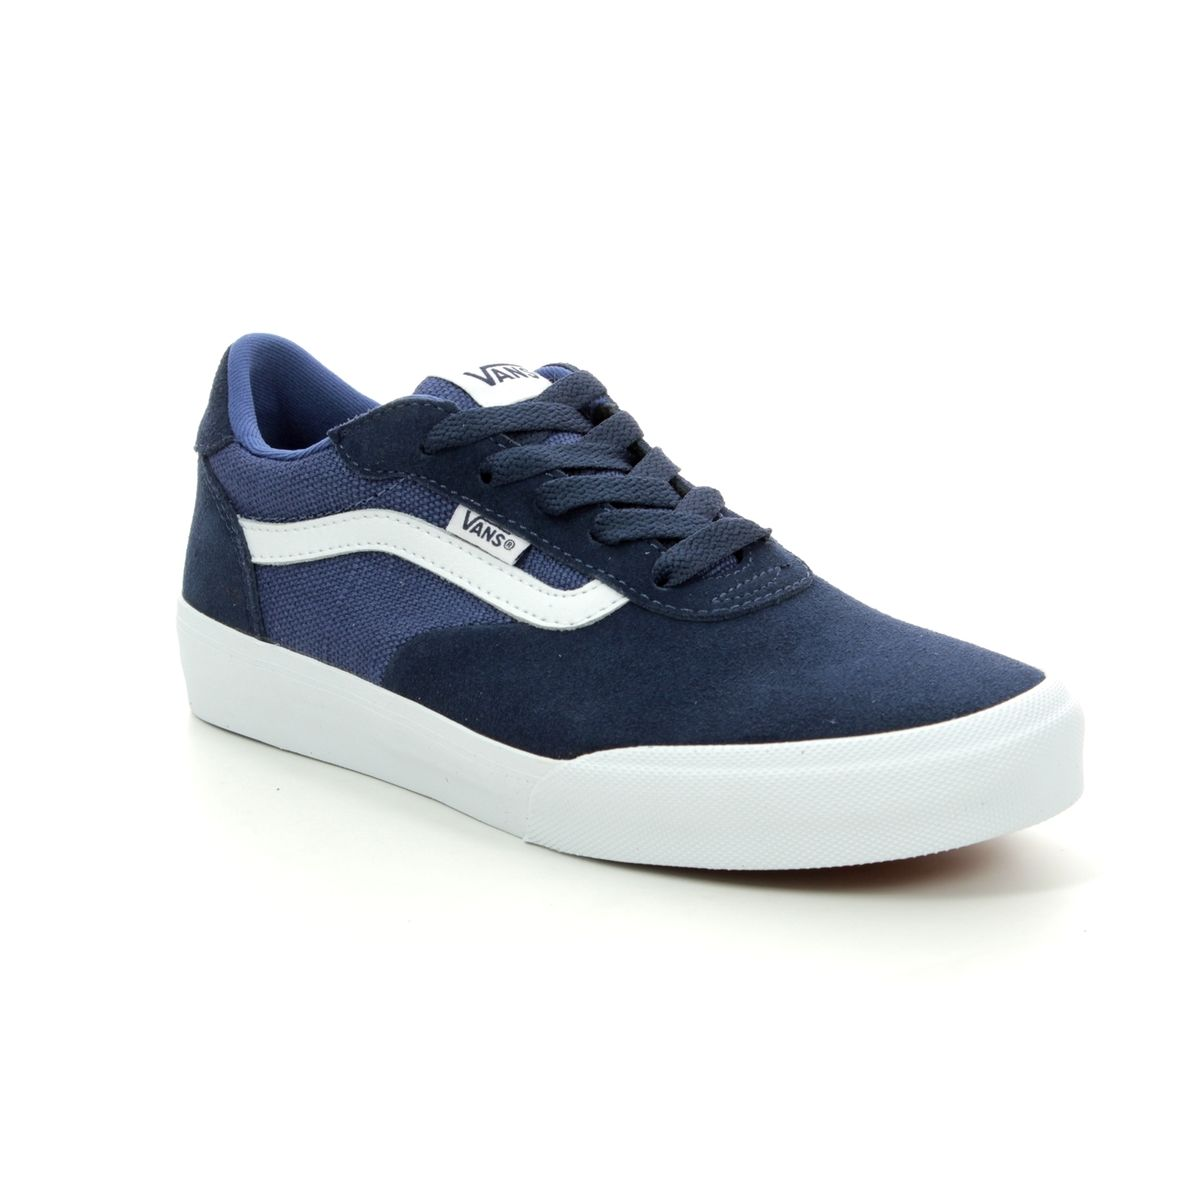 2ce216f84d50 Vans Trainers - Navy - VN0A3WMXV G6 PALOMAR YOUTH